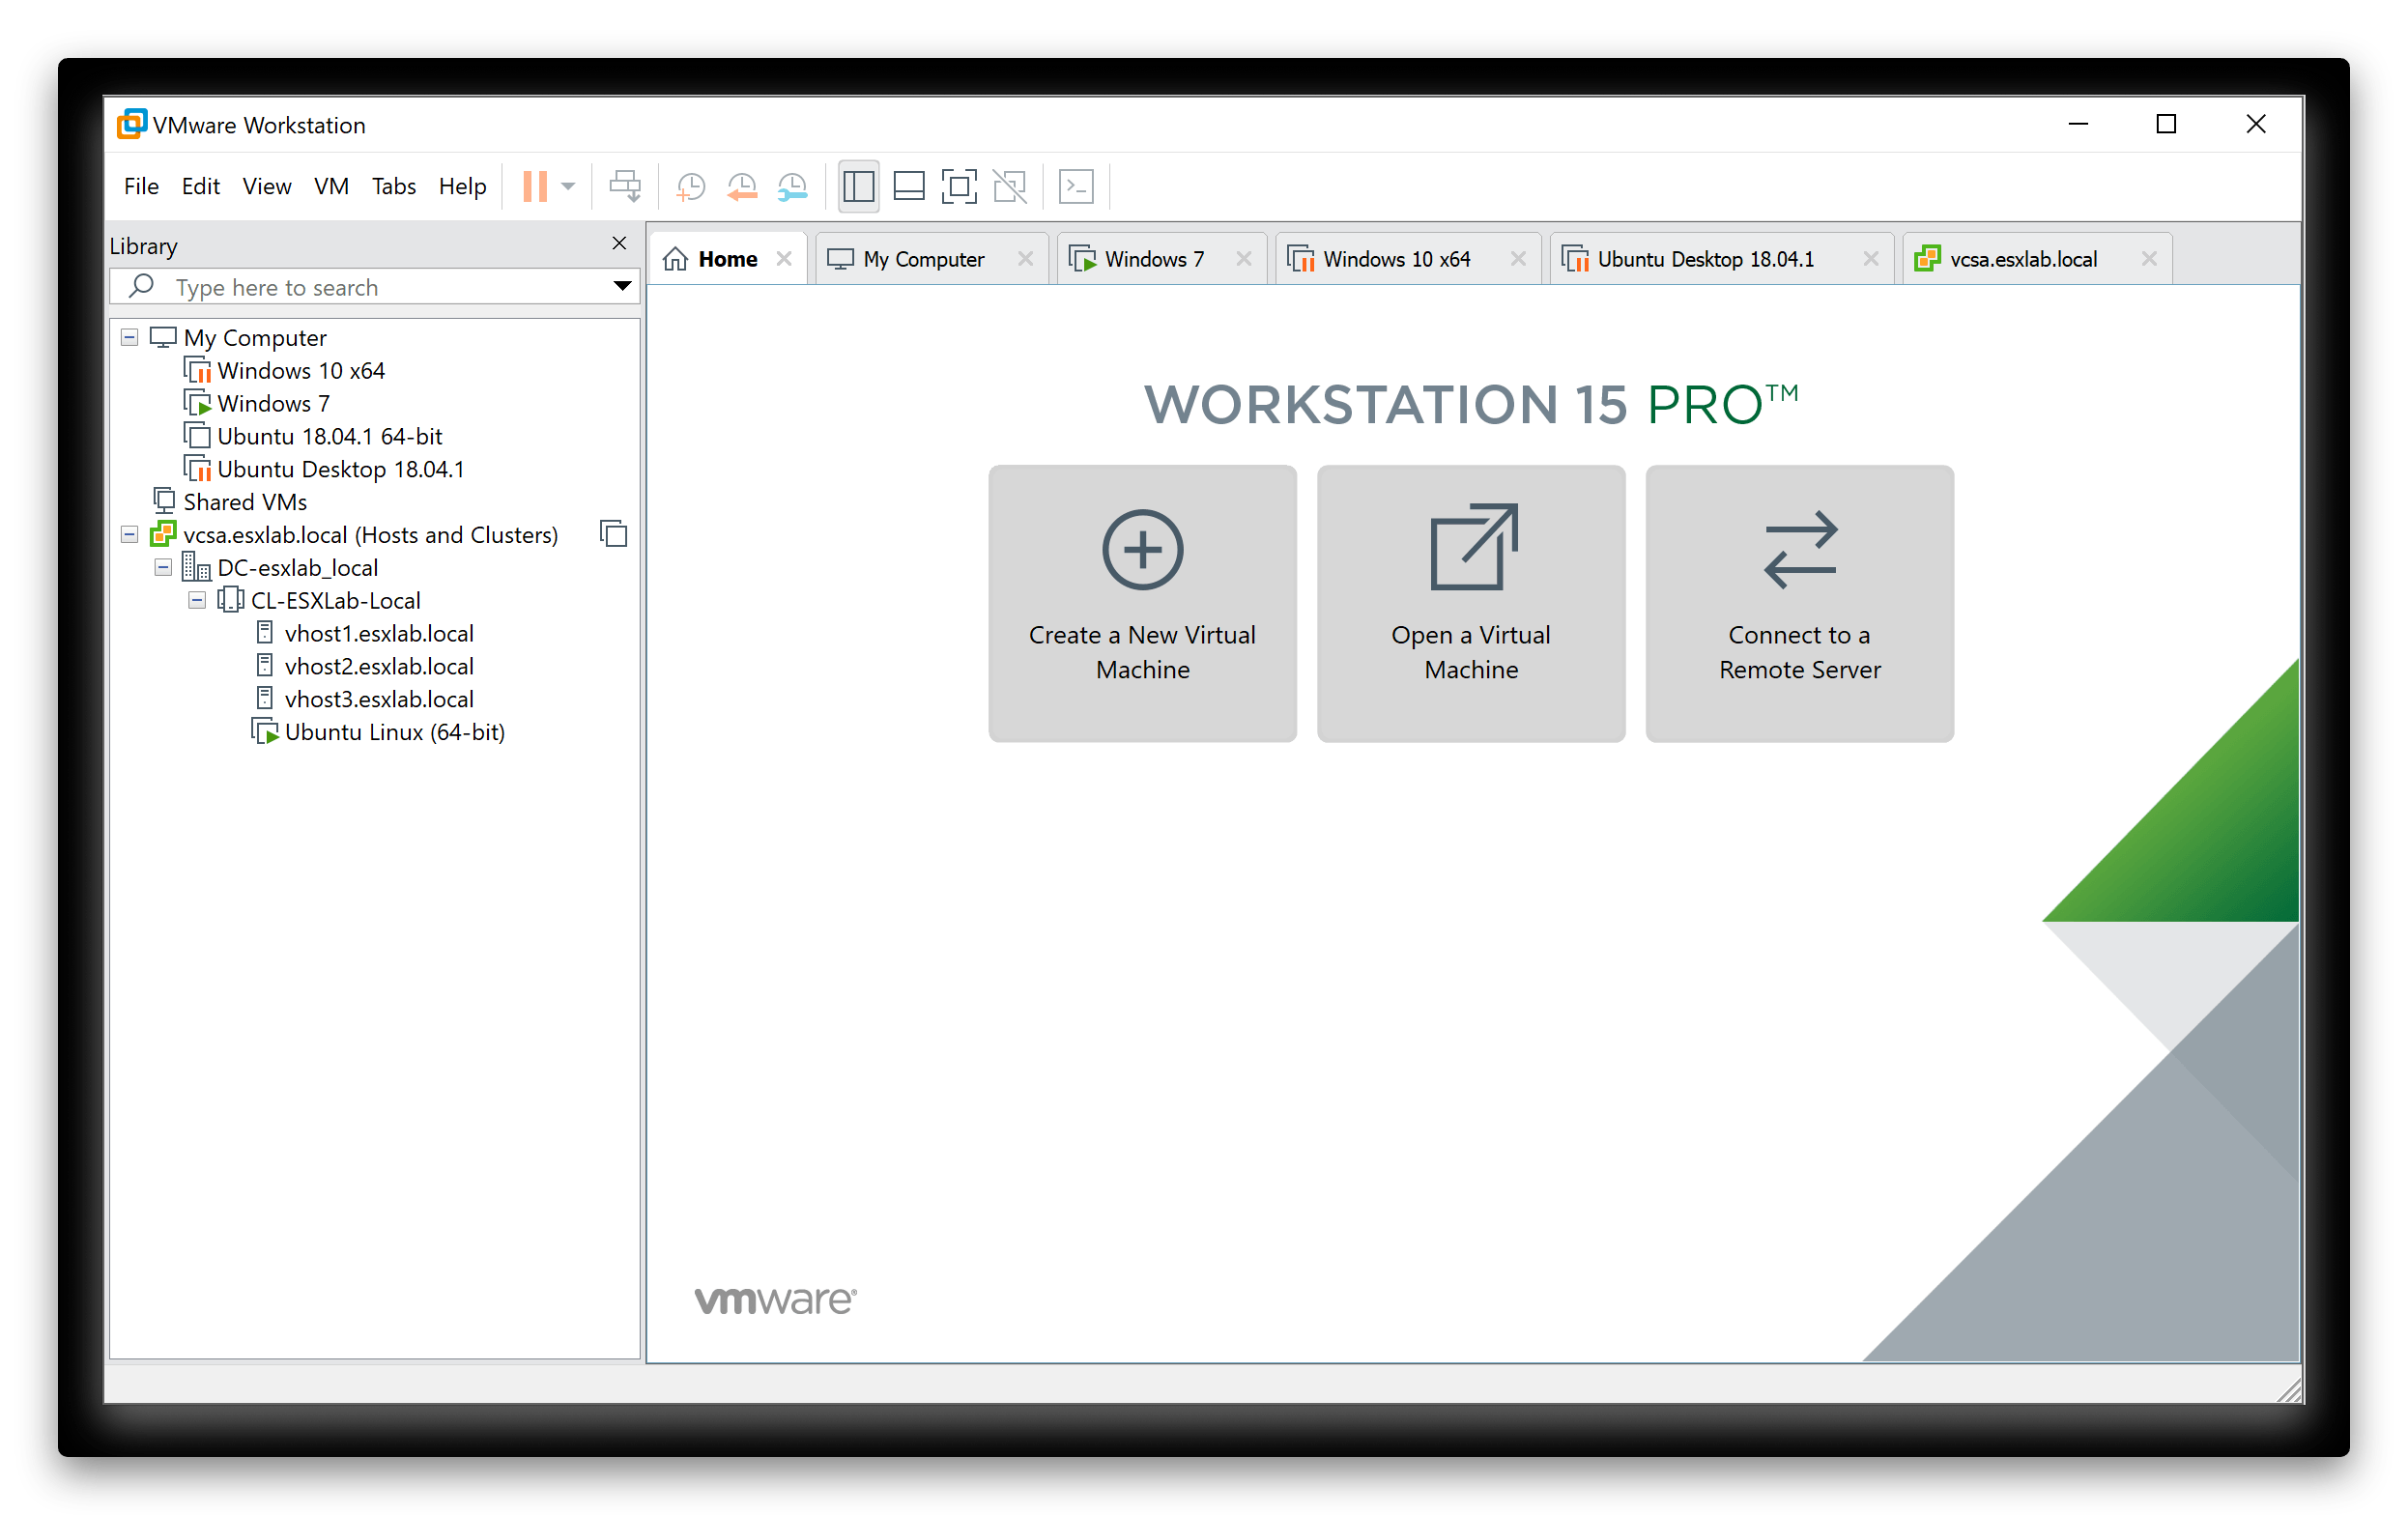 VMware Workstation Pro 15 永久激活密钥